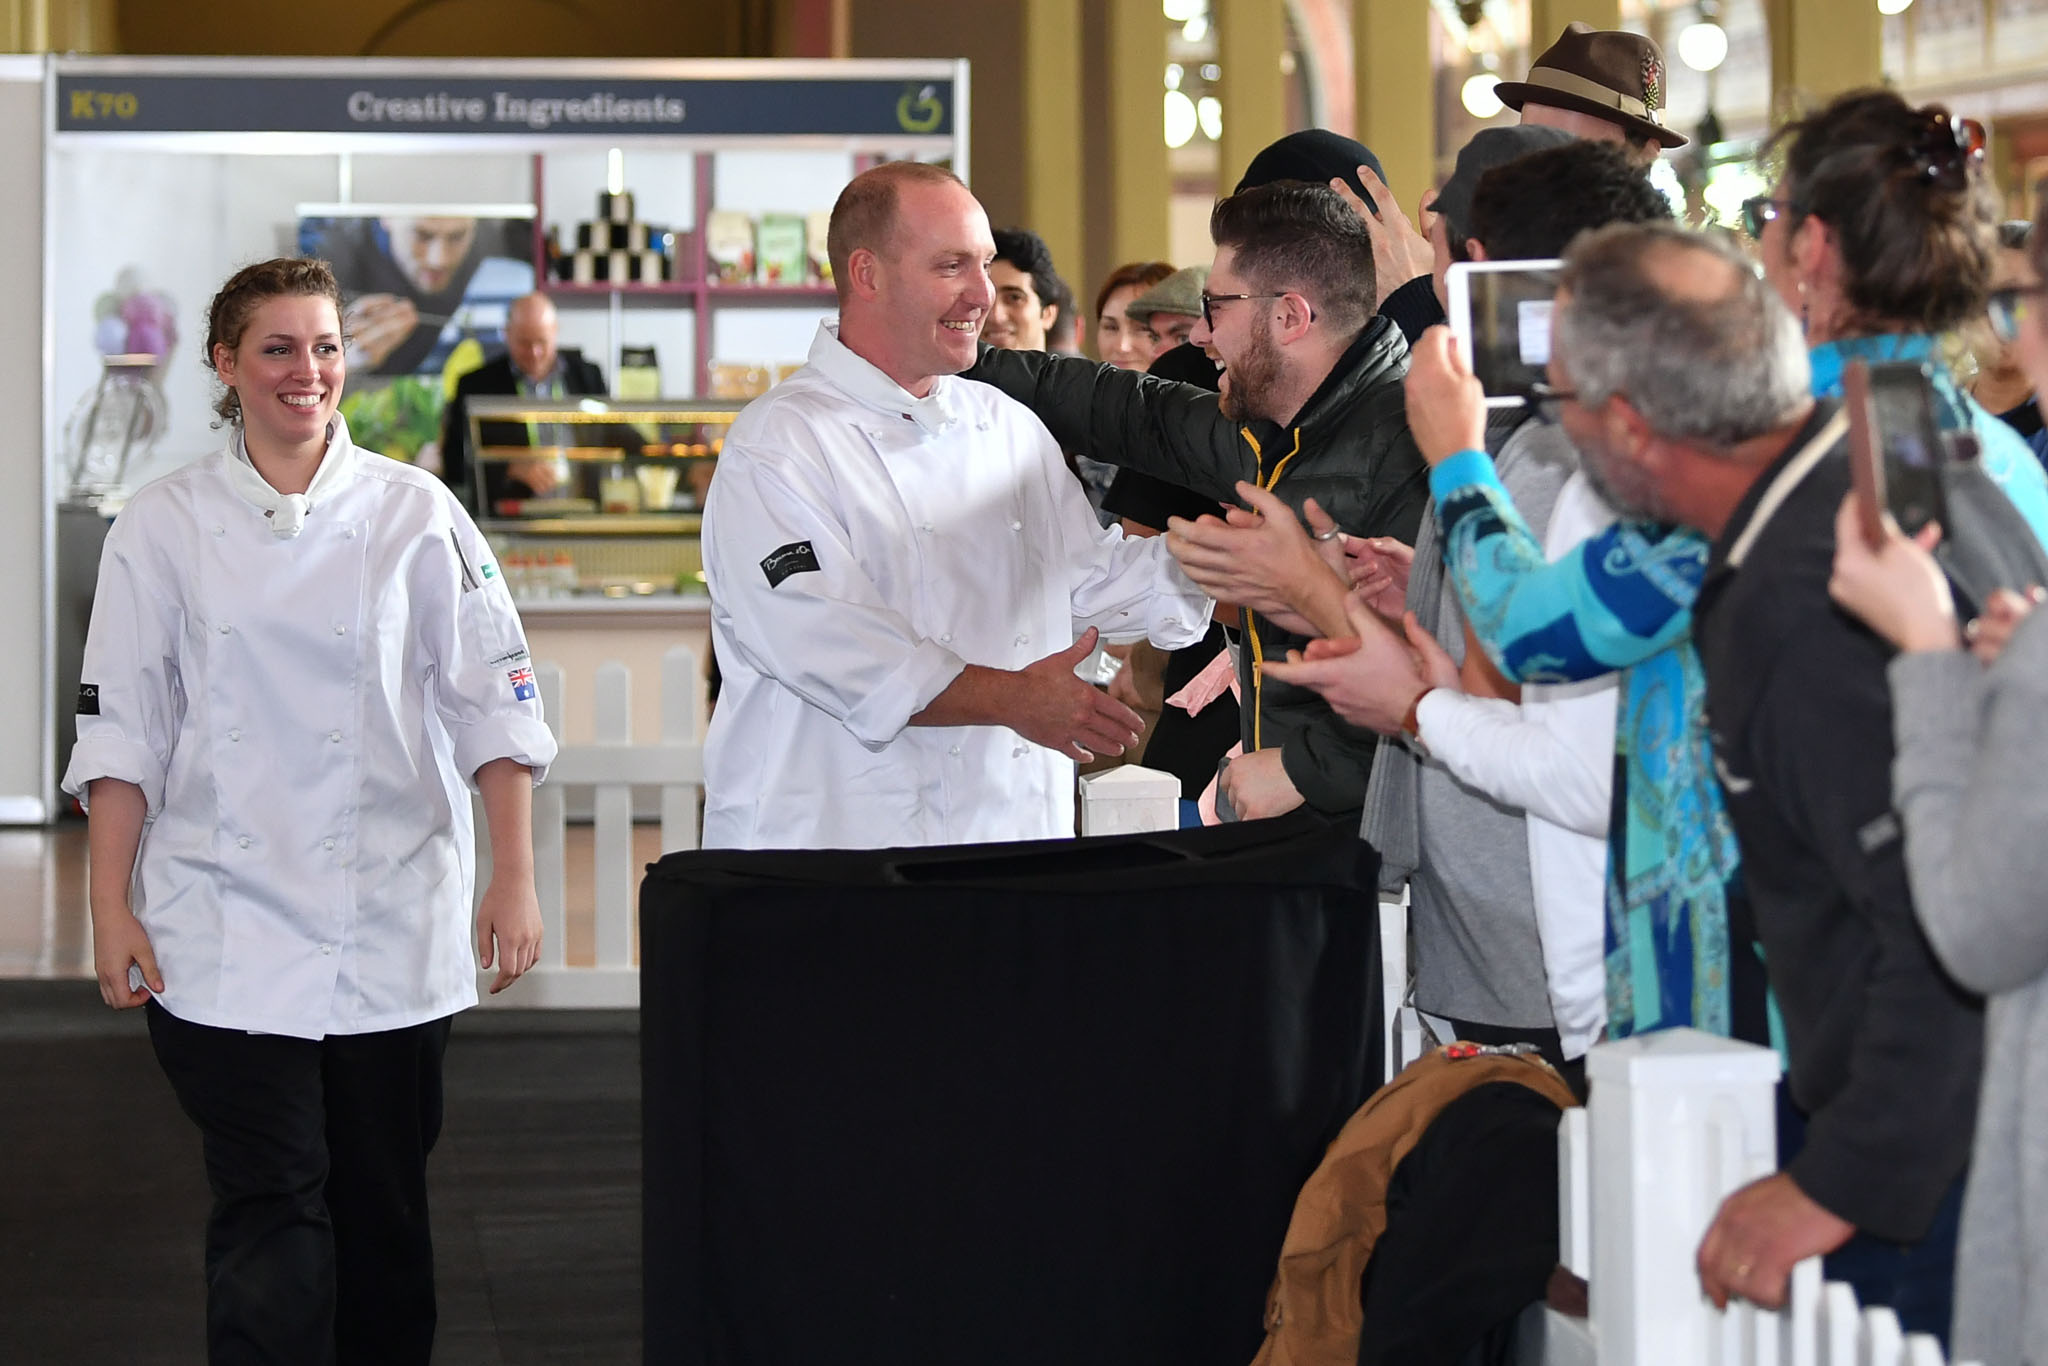 Melbourne, 30 May 2017 - Michael Cole and Laura Skvor of the Georgie Bass Café & Cookery in Flinders celebrate after winning the Australian selection trials of the Bocuse d'Or culinary competition held during the Food Service Australia show at the Royal Exhibition Building in Melbourne, Australia. Photo Sydney Low